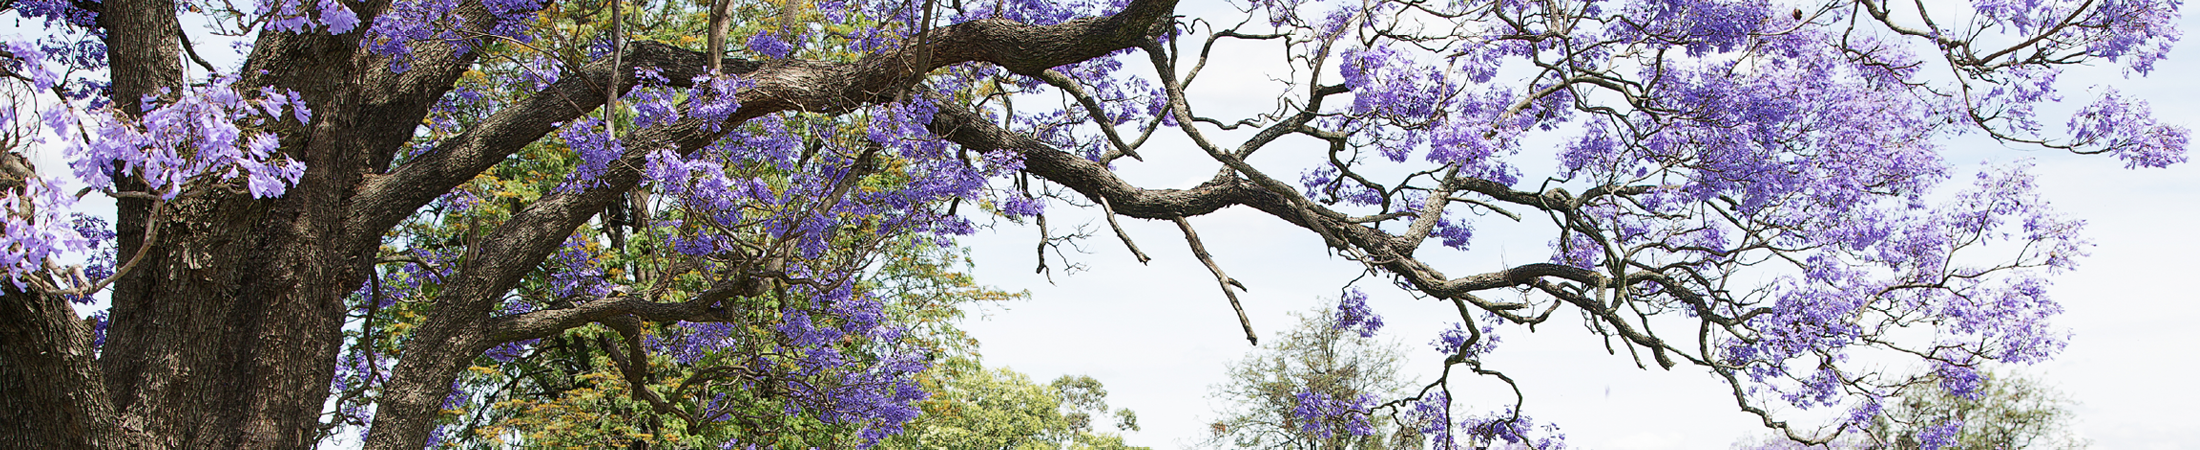 Interior banner - jacaranda tree 2